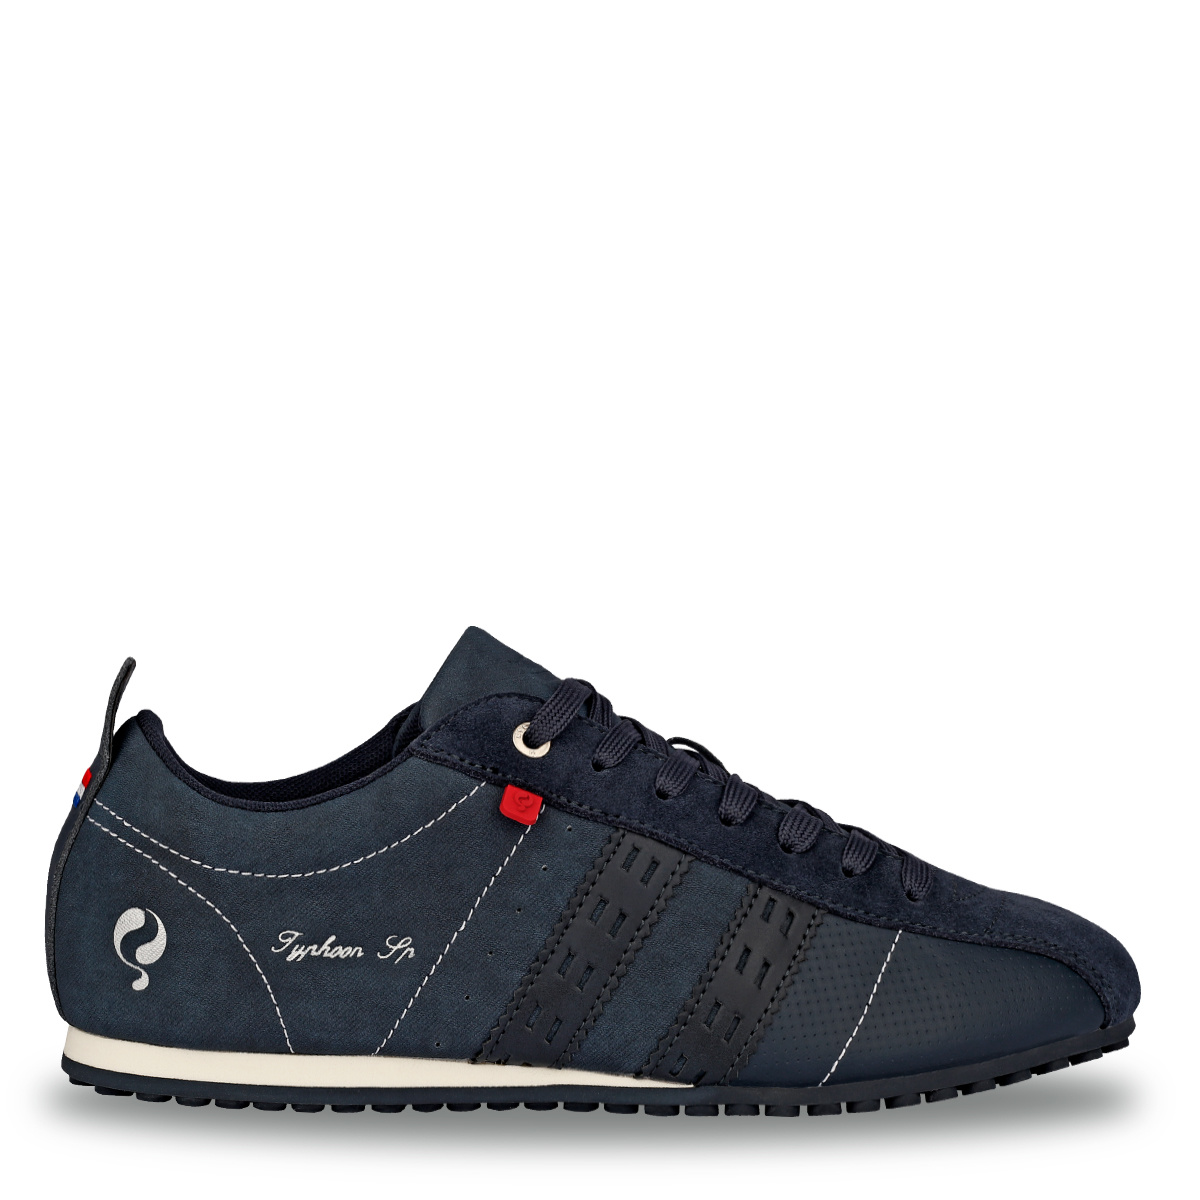 Heren Sneaker Typhoon Sp - Denim Blauw